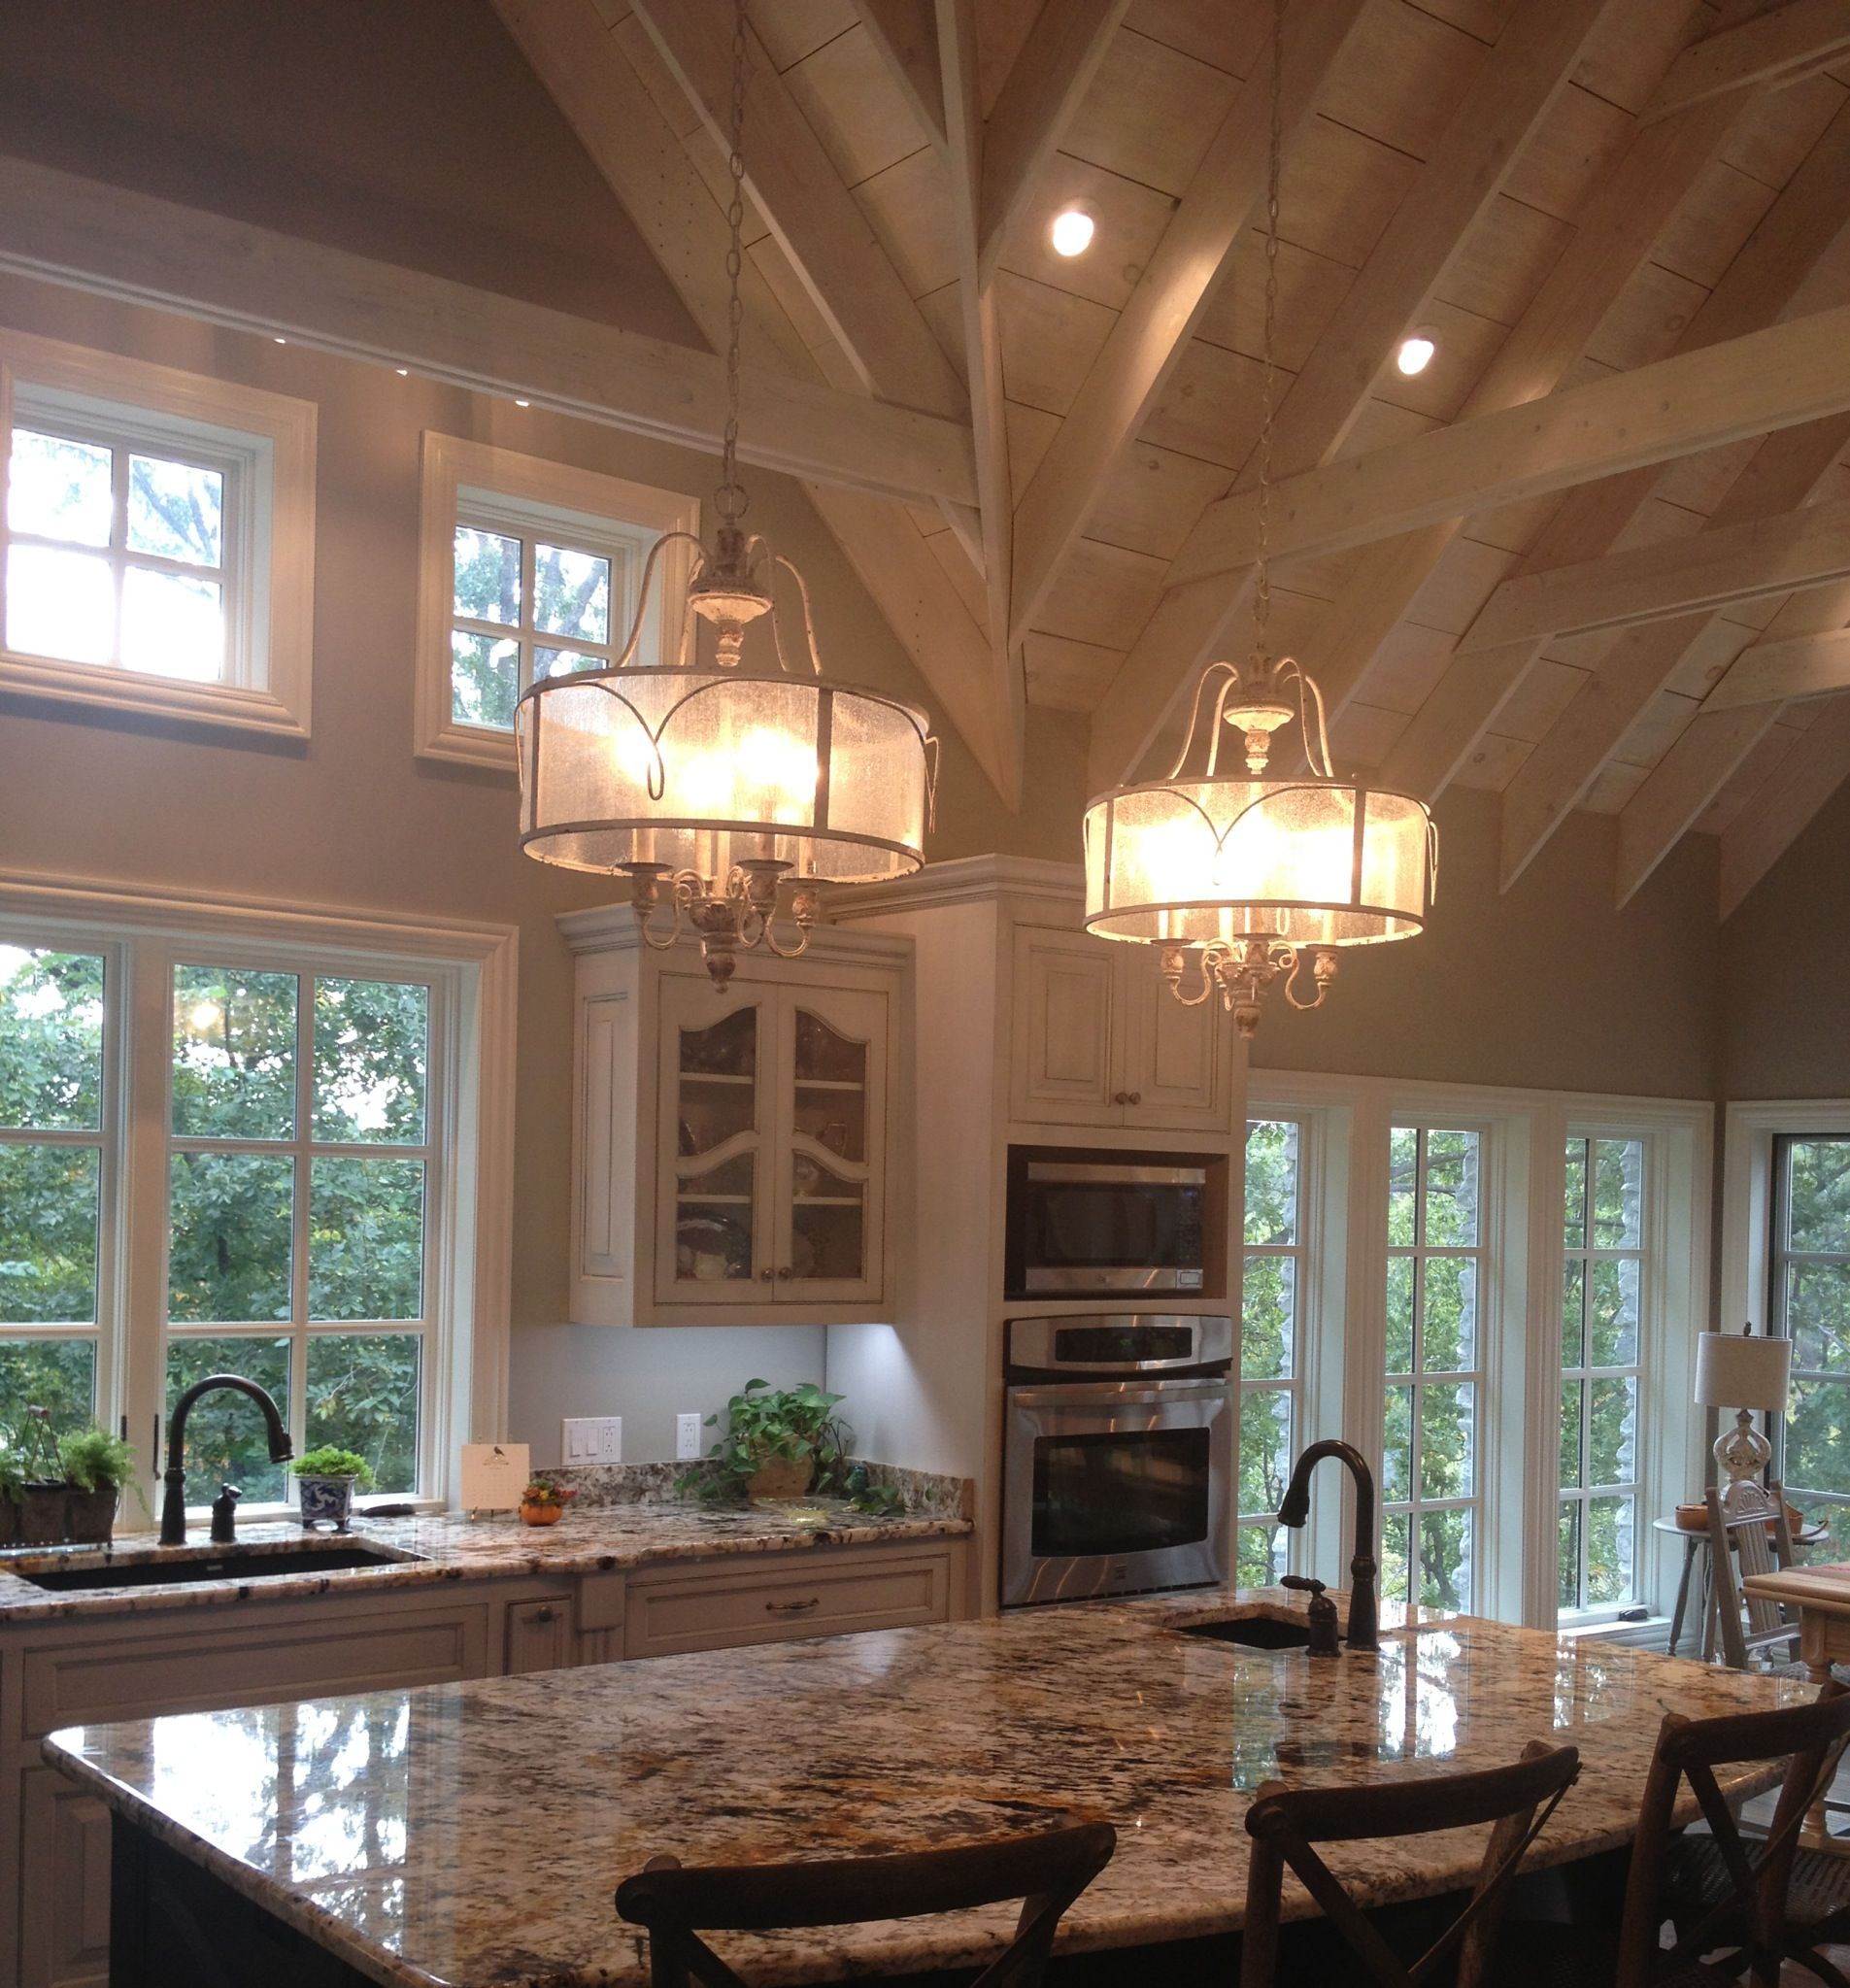 French Country Kitchen Lighting: French Country, Gray Glazed Cabinets, White Washed Vaulted